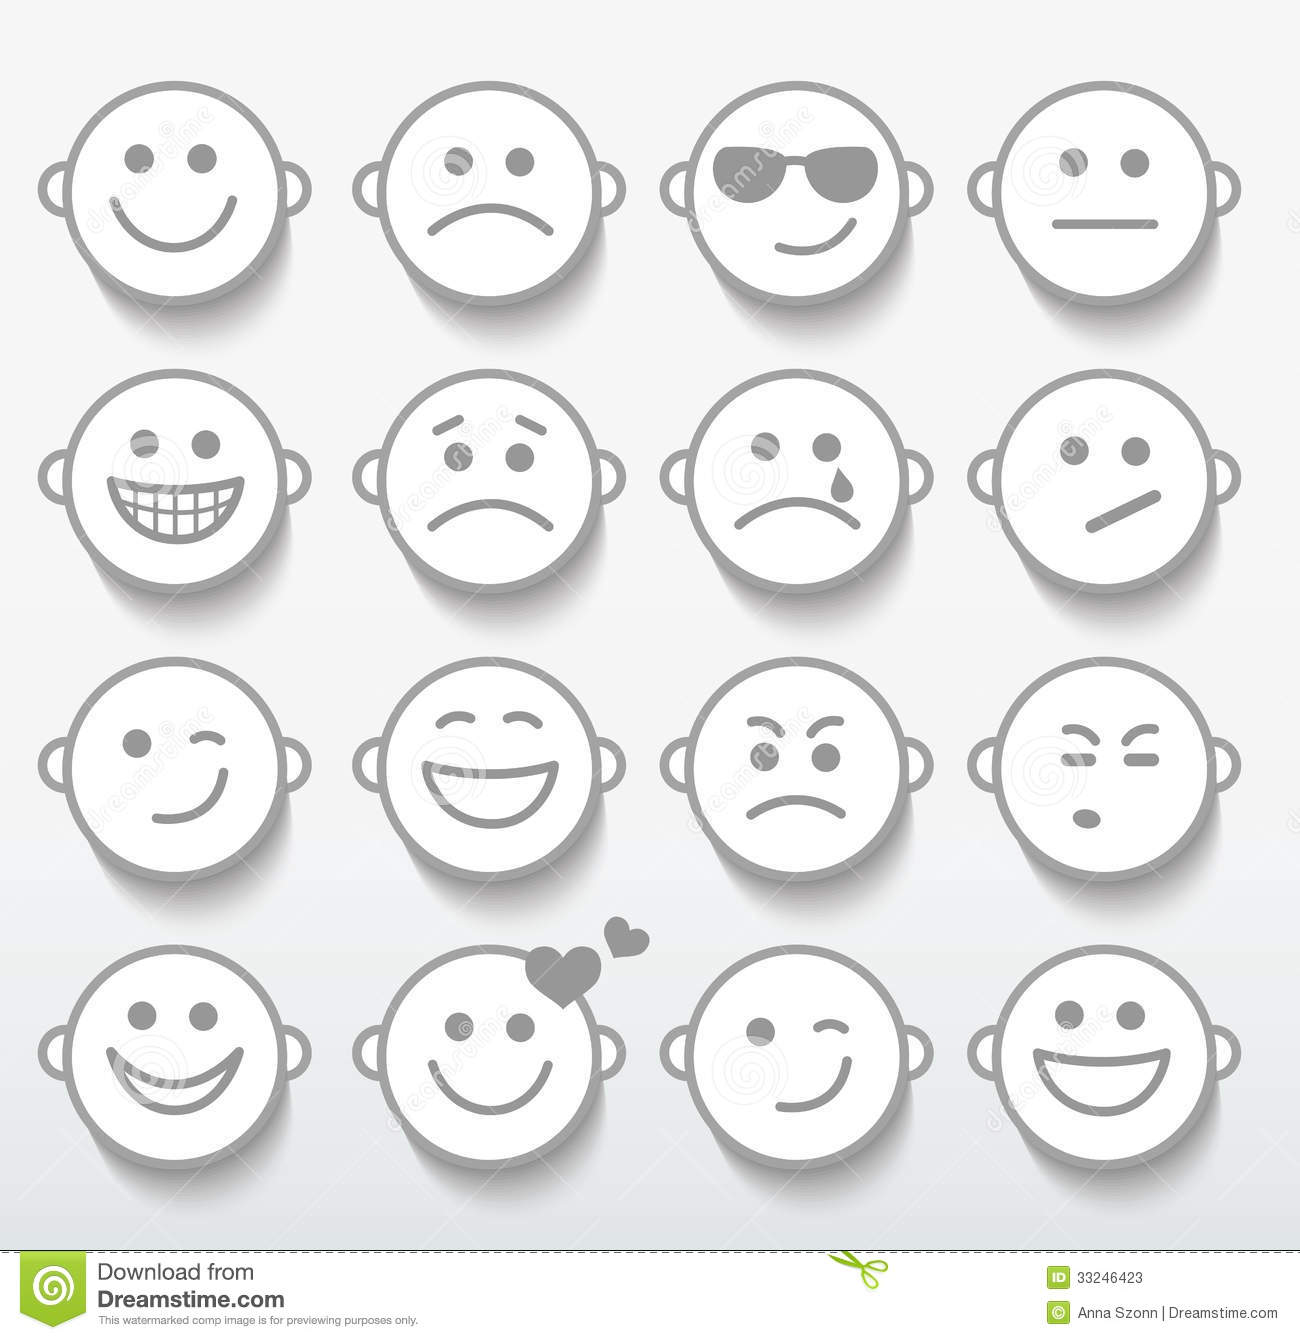 Worksheets Emotion Faces set of faces with various emotion expressions stock image photos